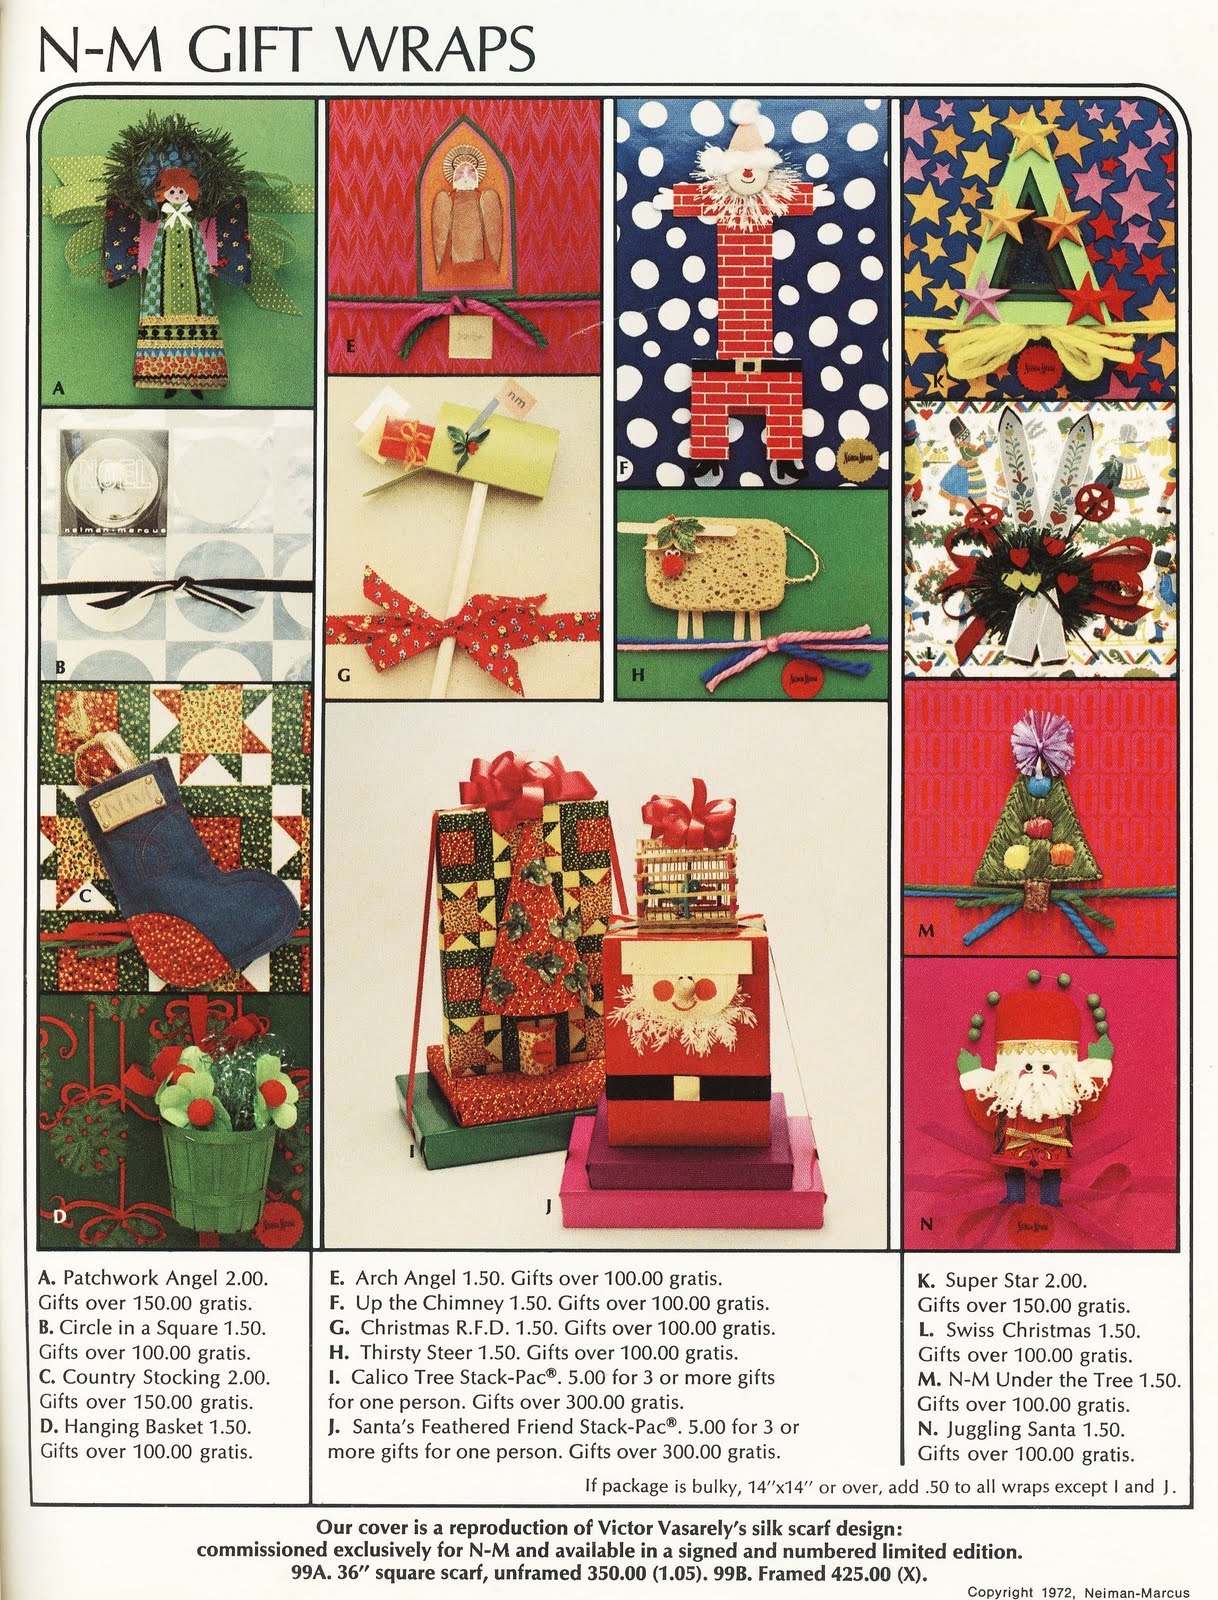 The Trad: A 1972 Christmas - From Neiman Marcus